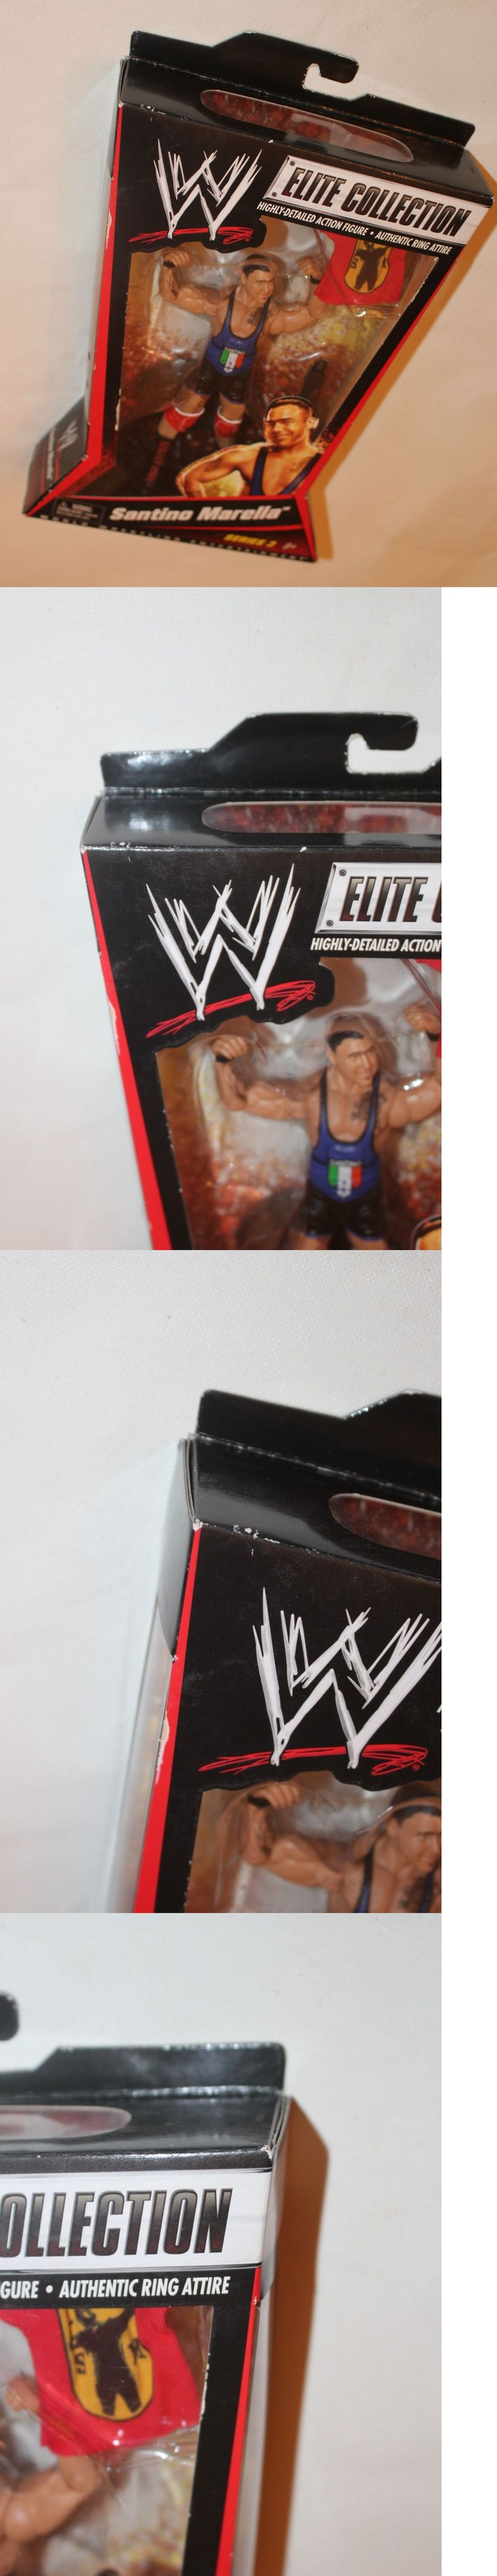 Someone bought this wwf superstars shoot out tabletop hockey game - Sports 754 Shawn Michaels Wwe Jakks Deluxe Classic Superstars Wrestling Figure Moc_bx3 Buy It Now Only 32 99 On Ebay Sports 754 Pinterest